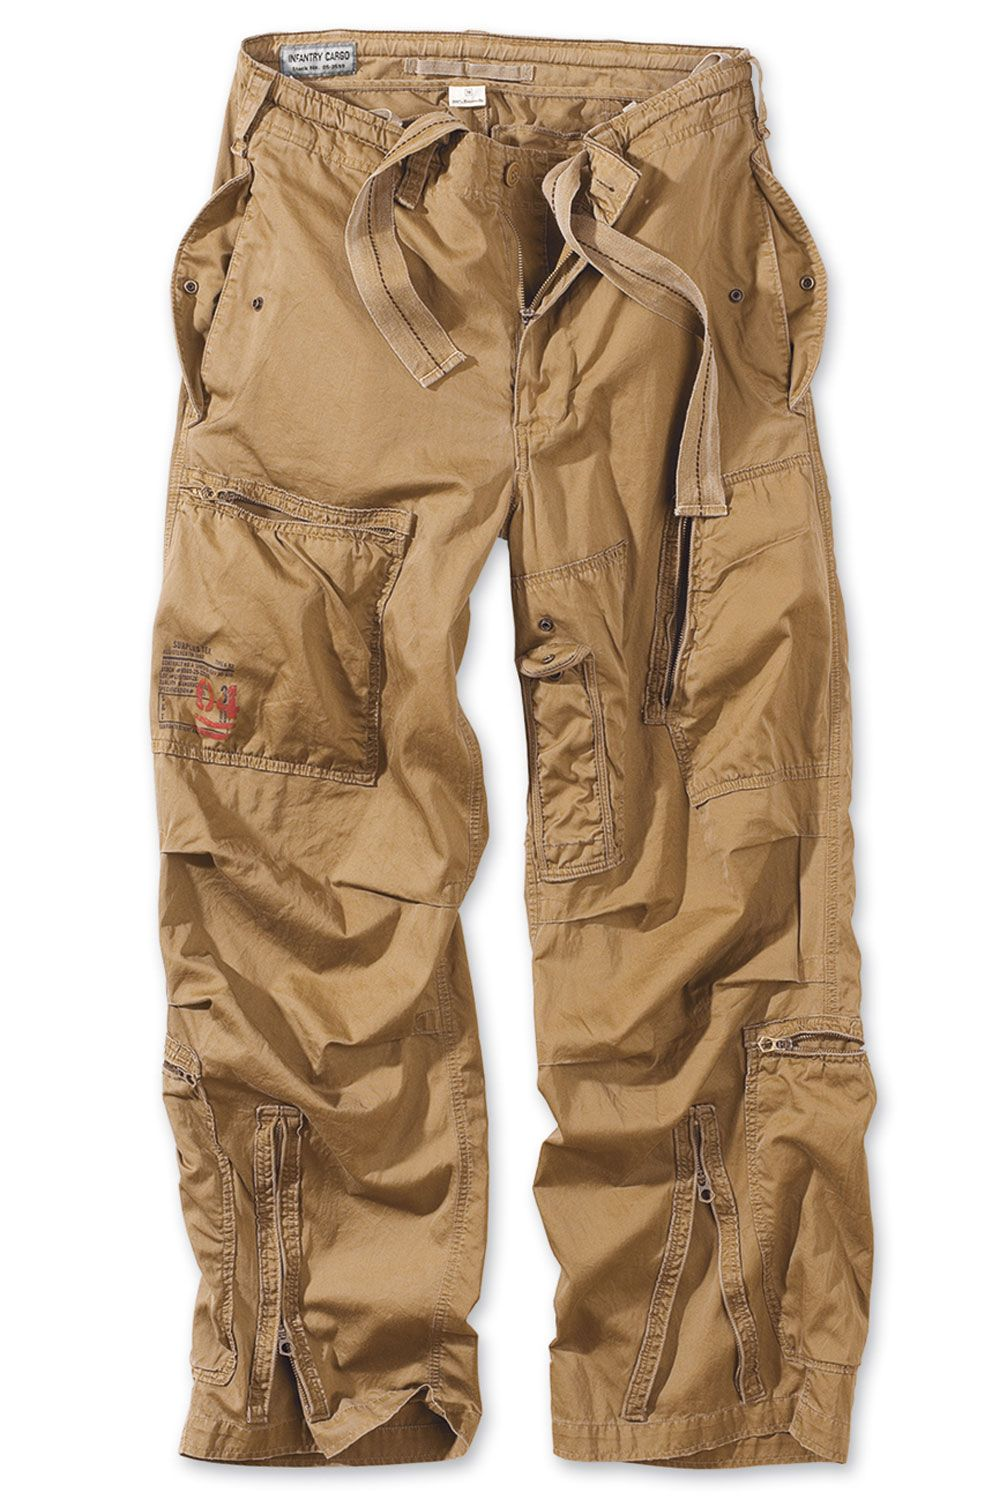 mens-baggy-cargo-pants | Men Cargo Pants | Pinterest | Cargo pants ...